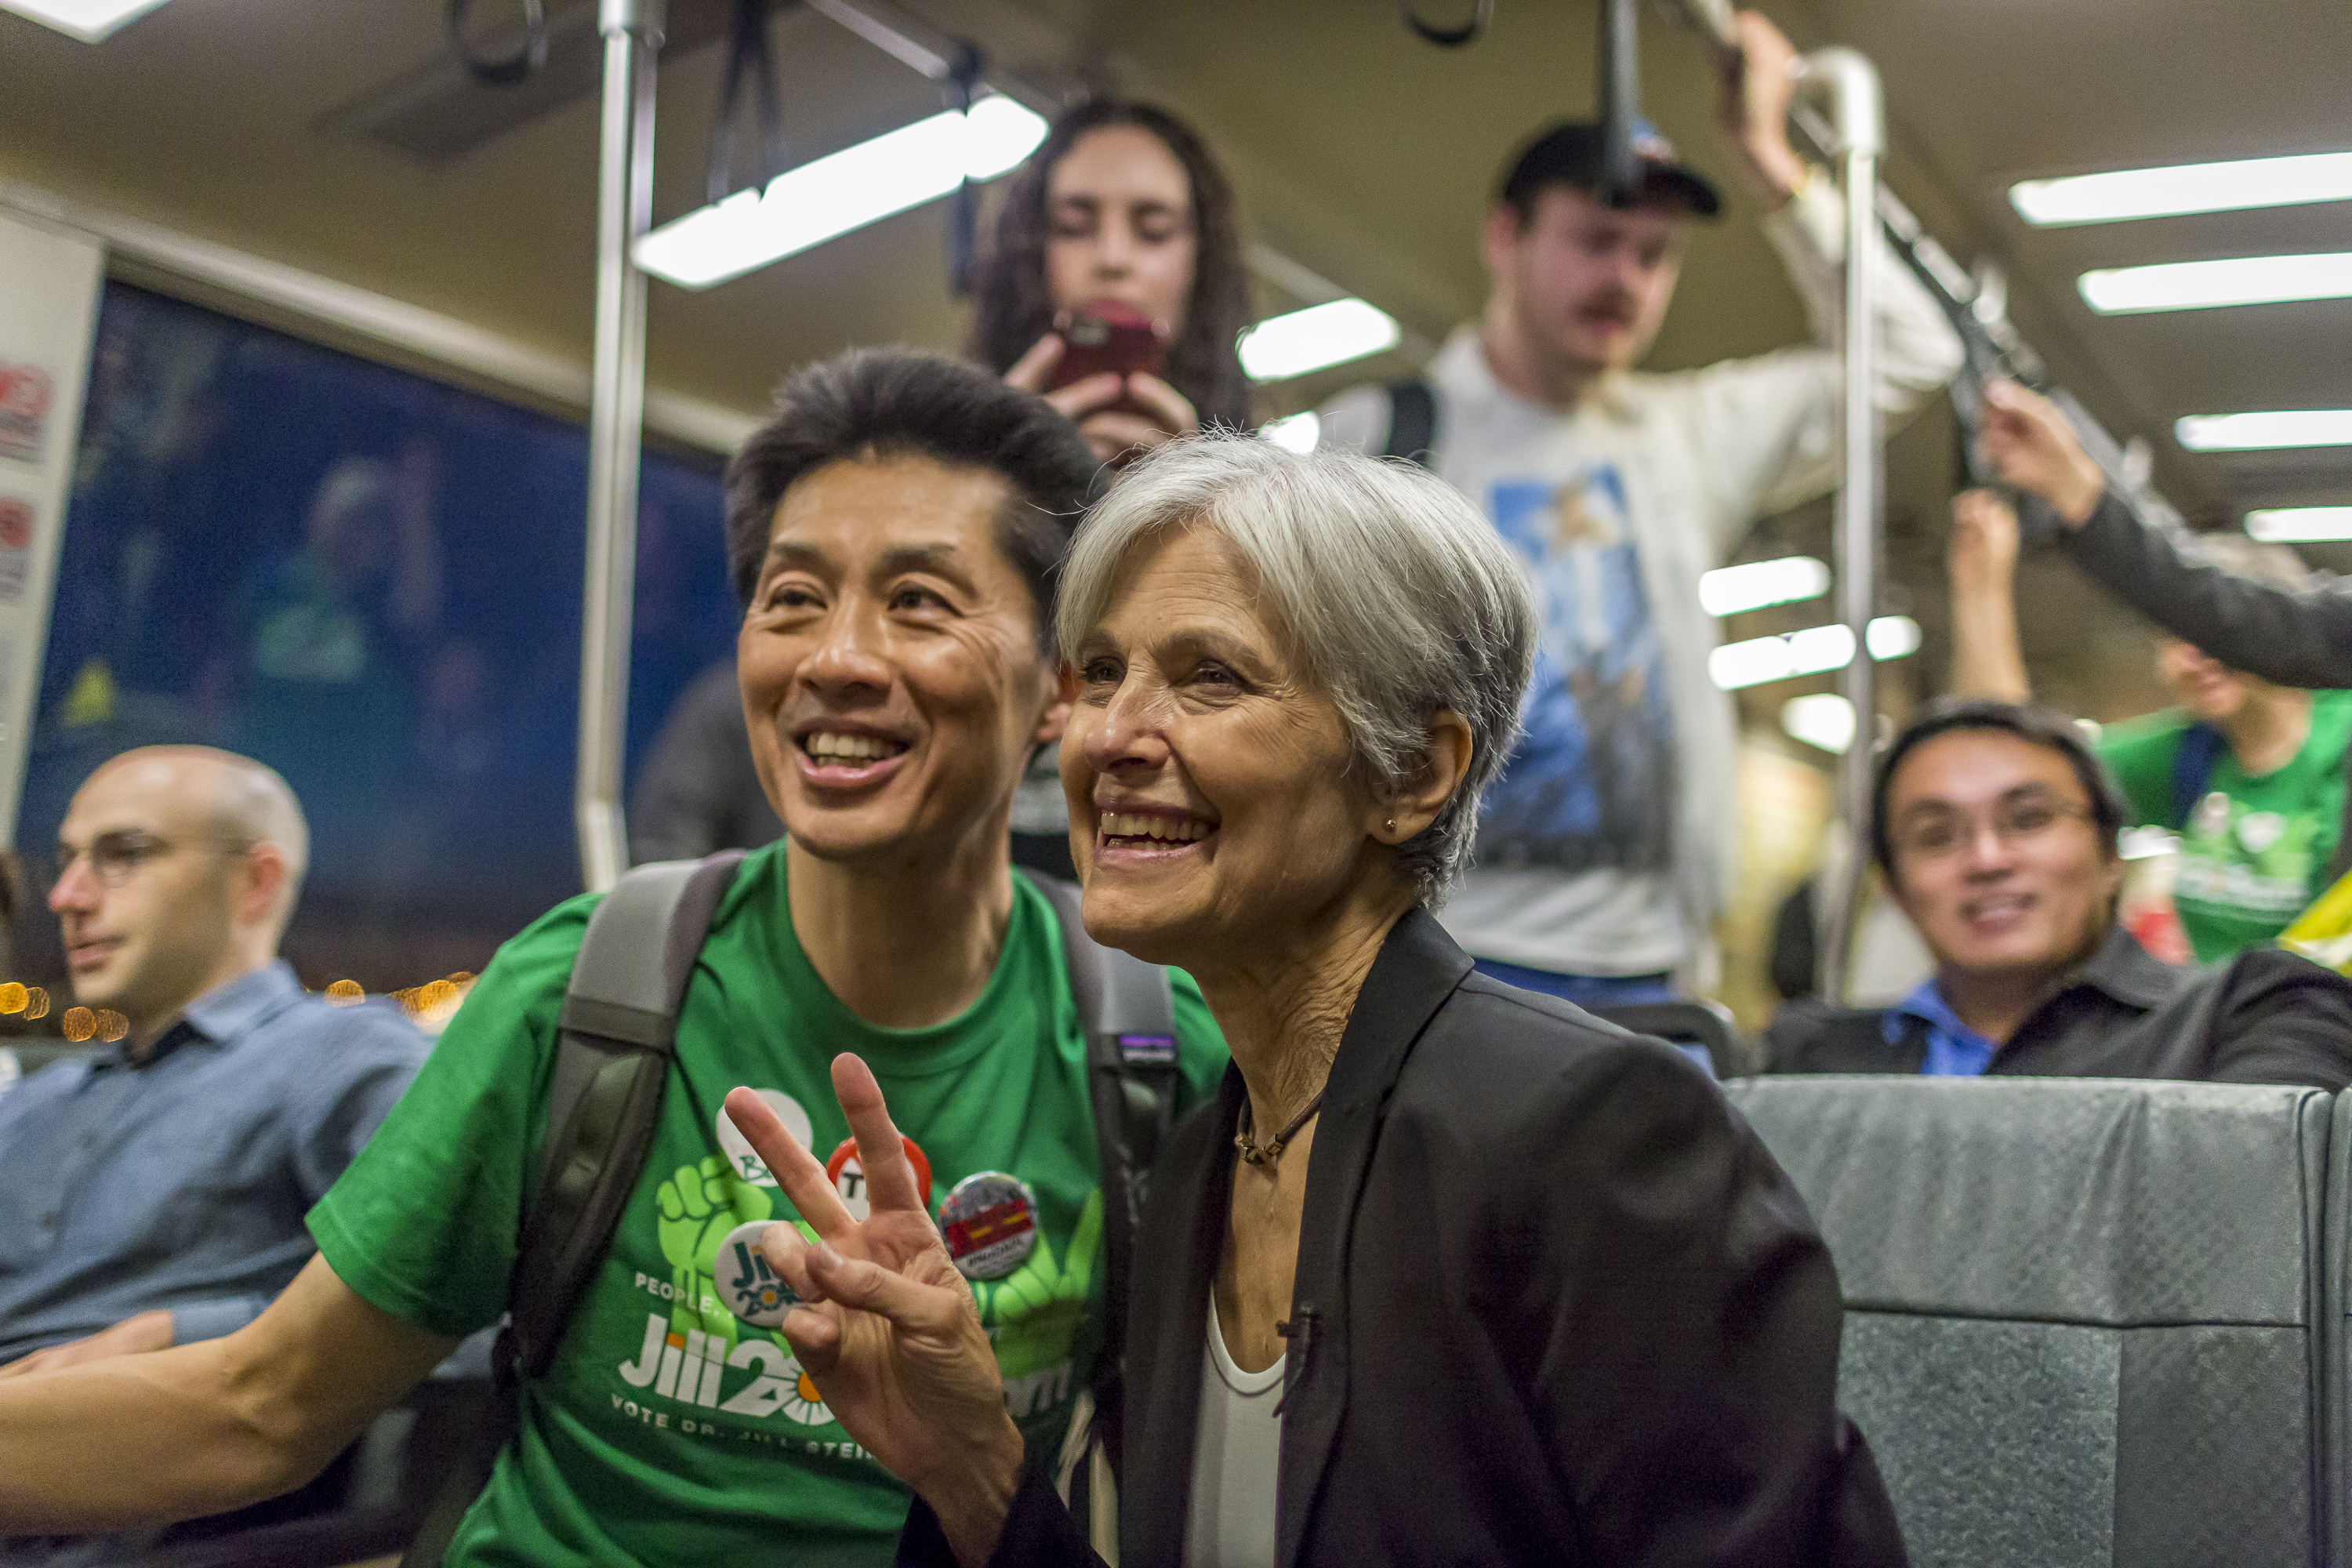 Green party presidential candidate Jill Stein rides the Bart